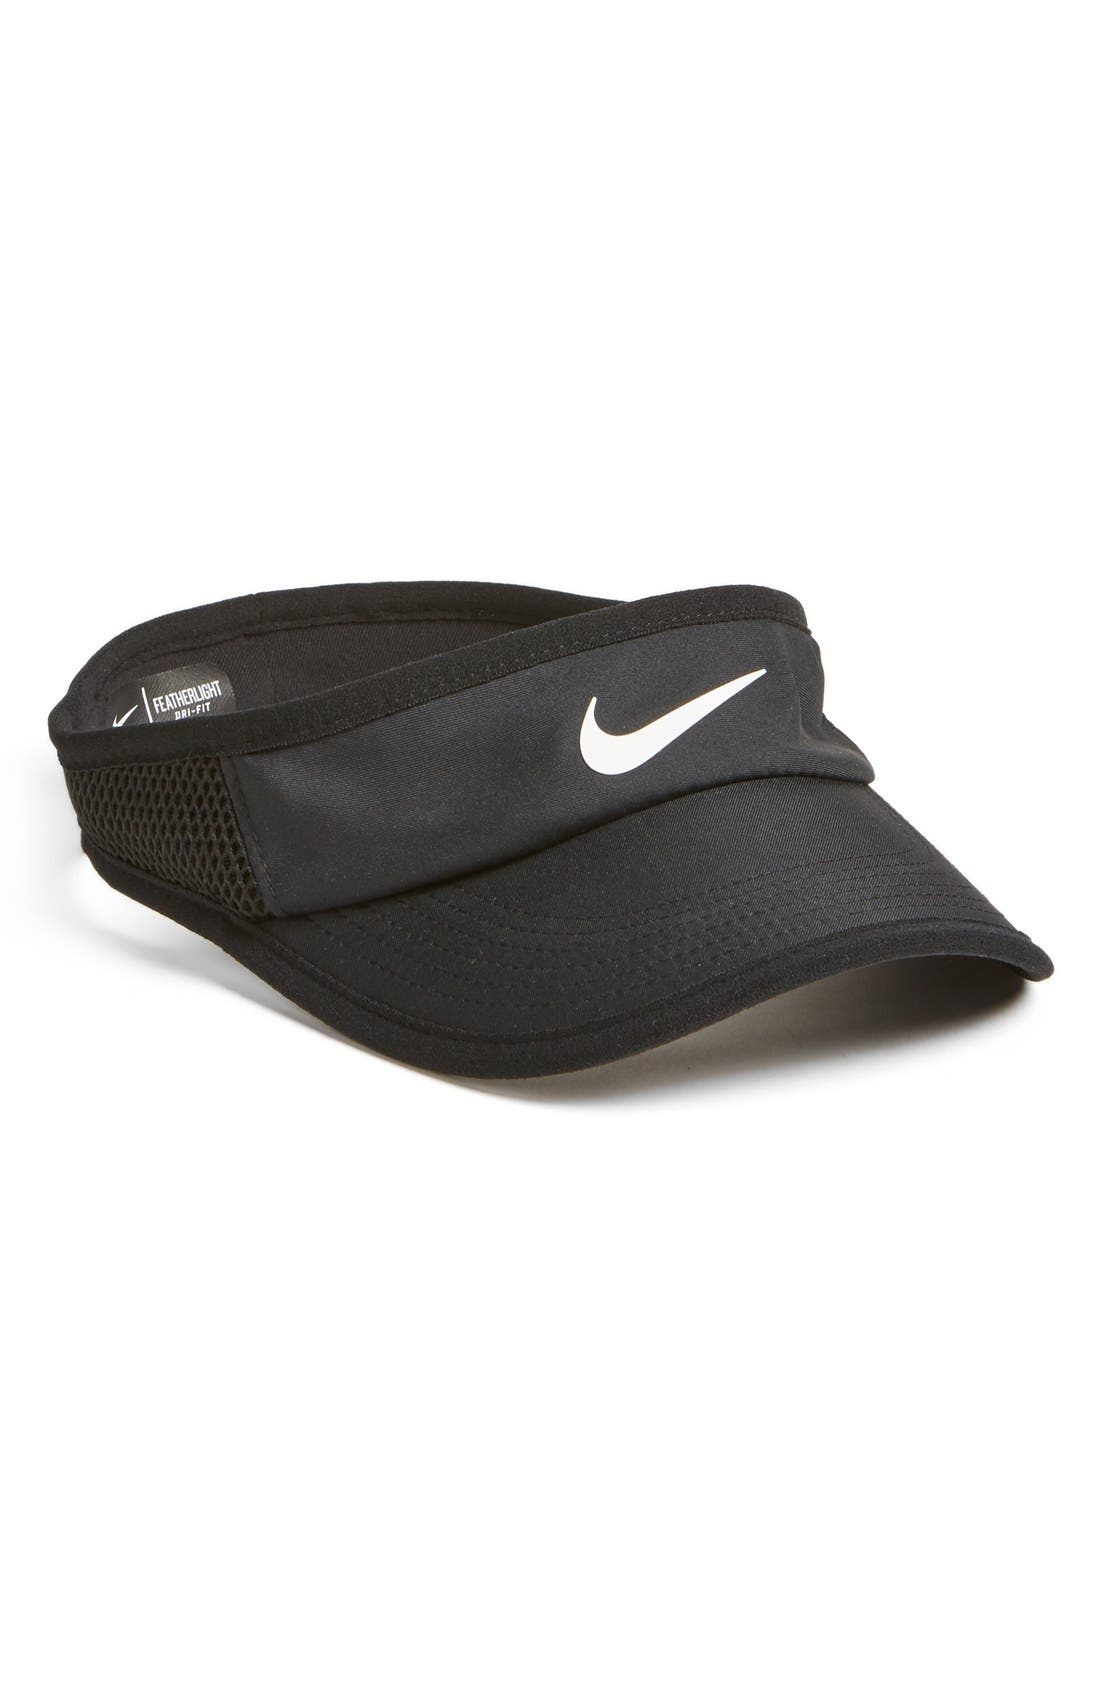 Alternate Image 1 Selected - Nike 'Featherlight' Dri-FIT Visor